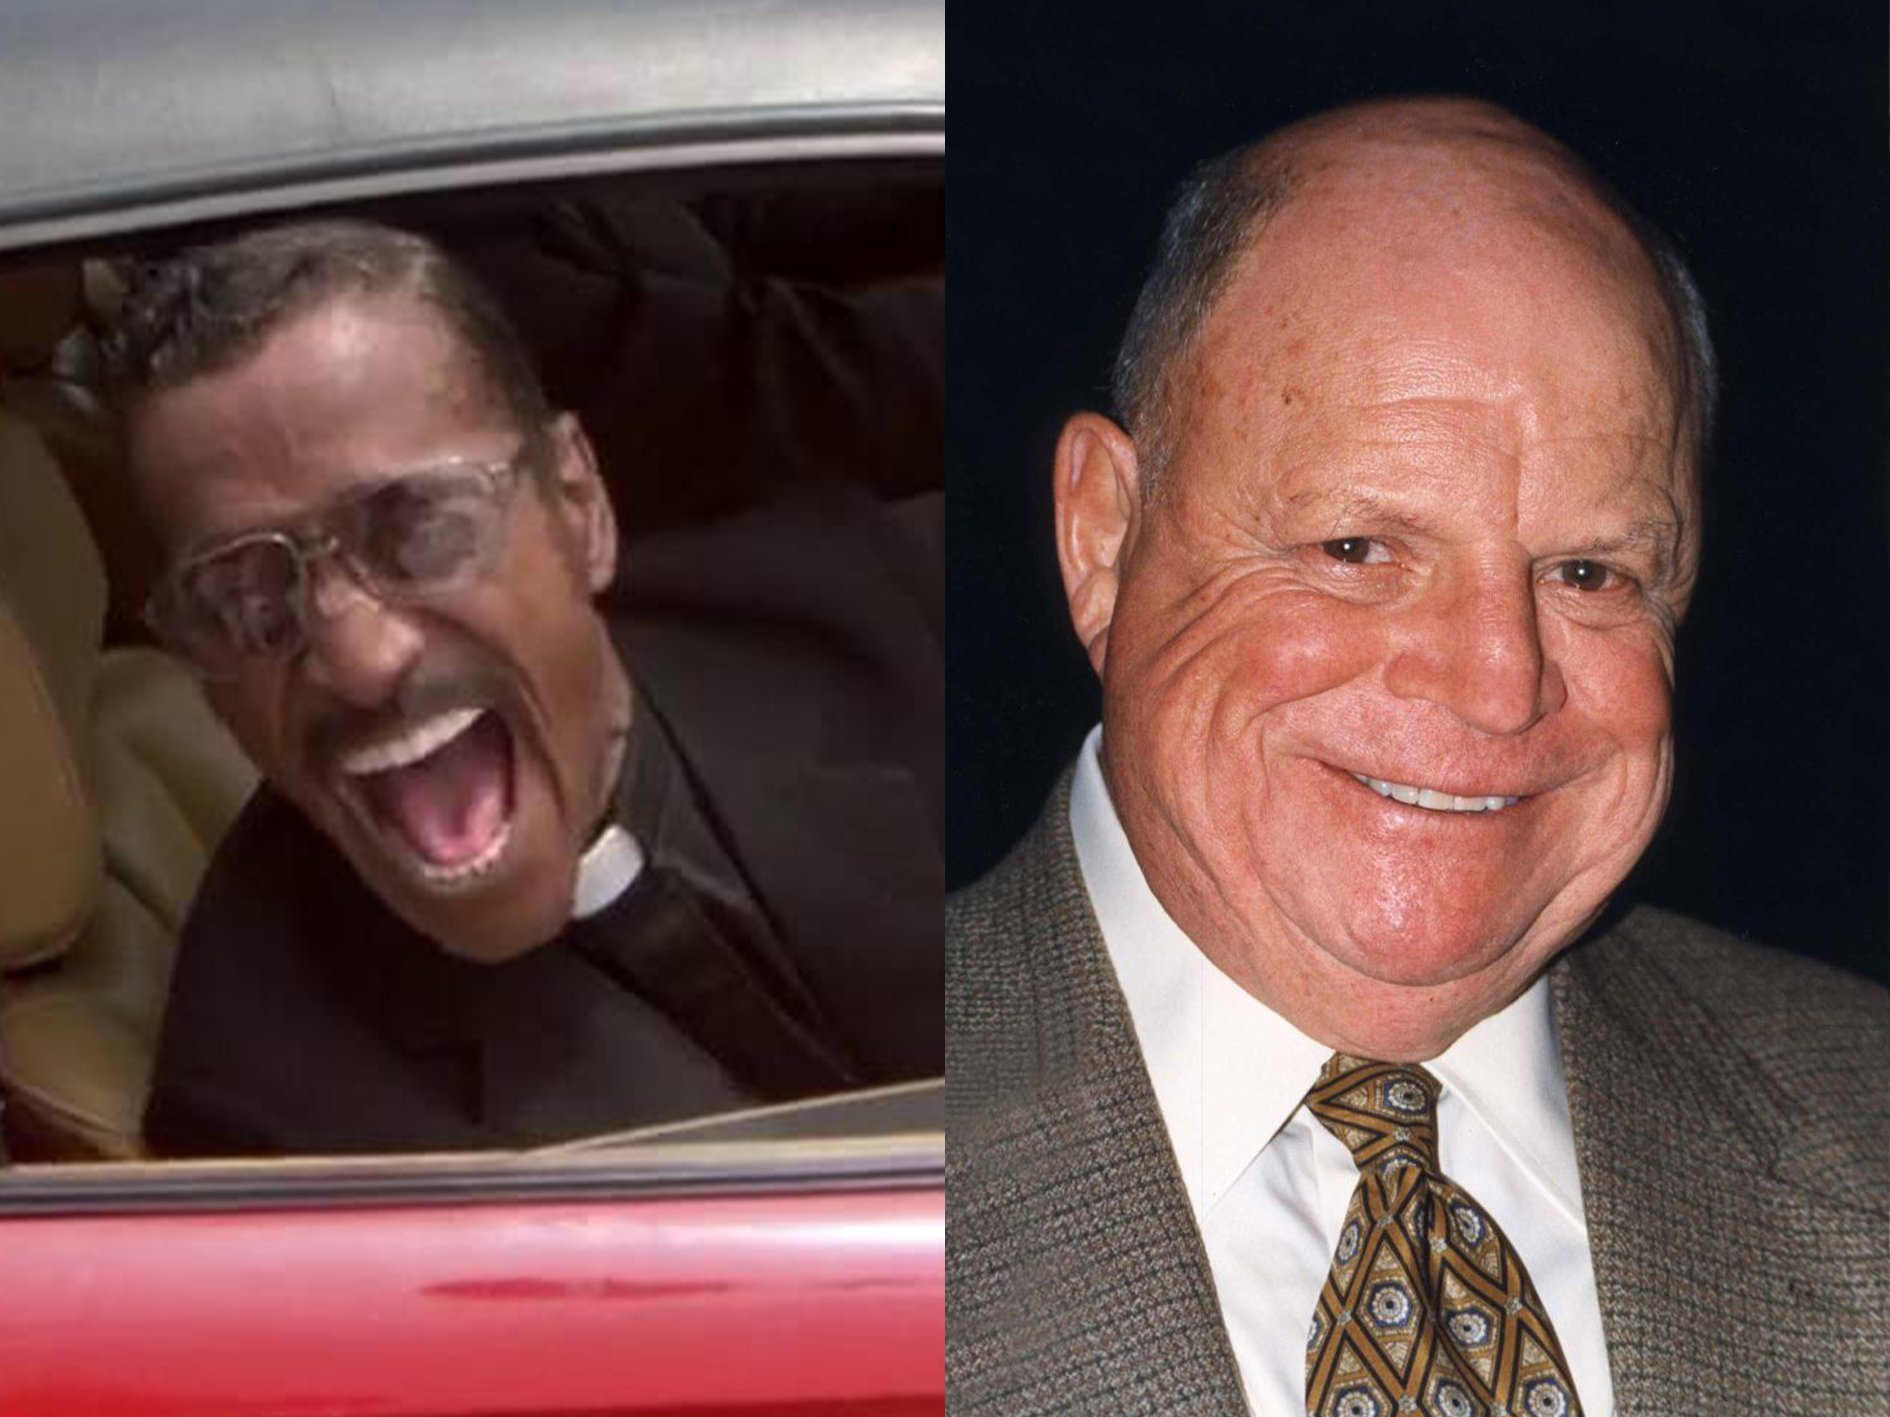 Cannonball Run Sammy Davis Jr Don Rickles 20 Fun Facts You Didn't Know About The Cannonball Run Films